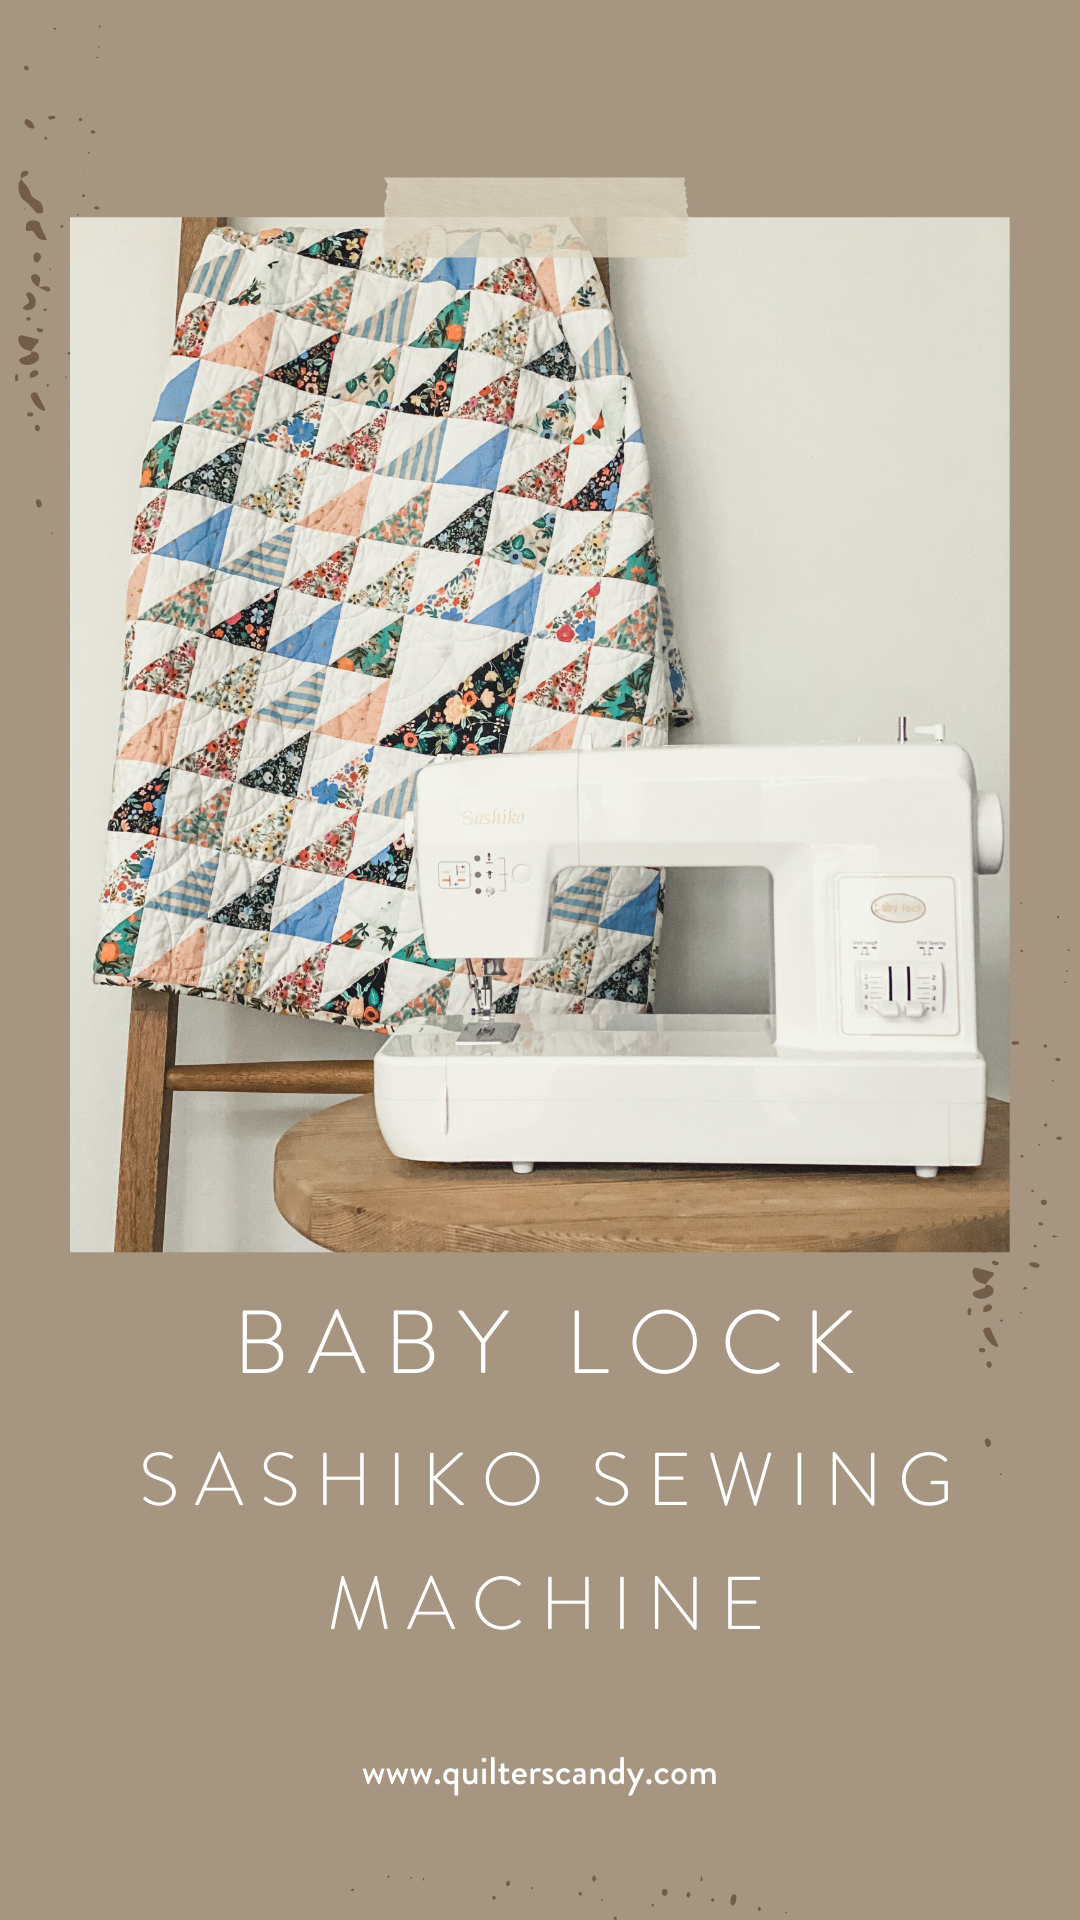 Quilters Candy shares the Baby Lock Sashiko Sewing Machine